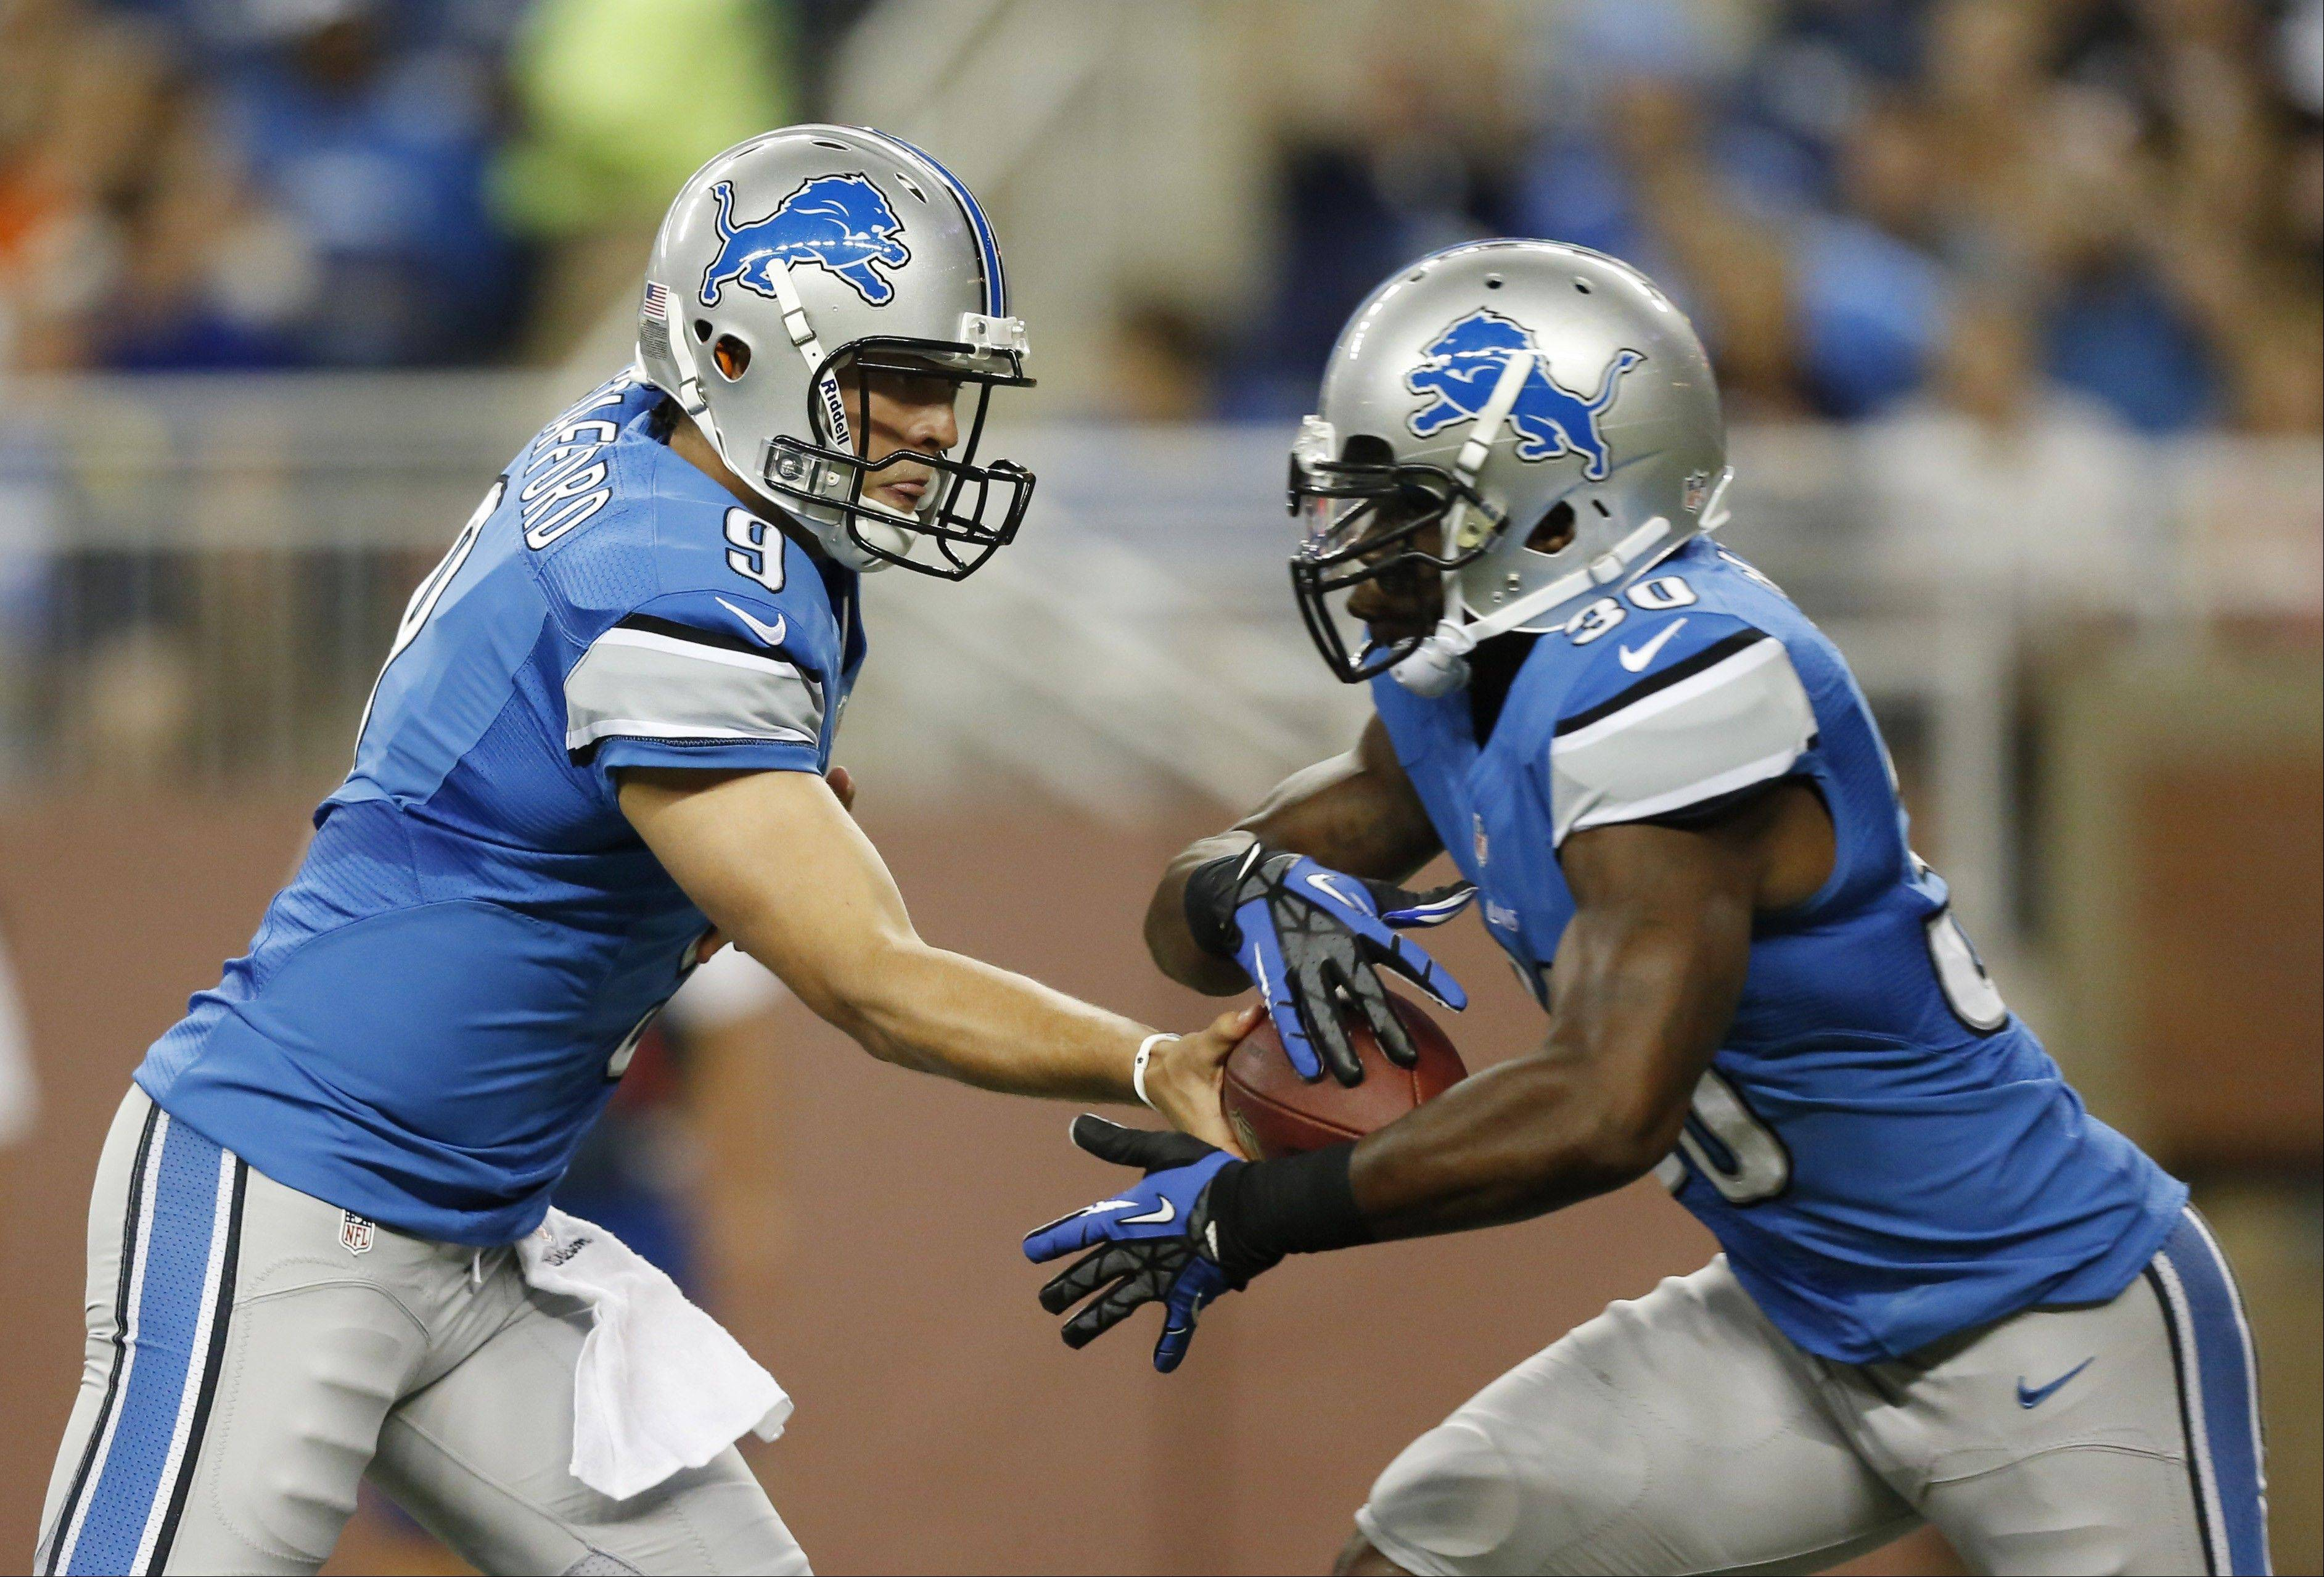 Fantasy football writer John Dietz believes Detroit Lions running back Kevin Smith, right, will have a big game this weekend.